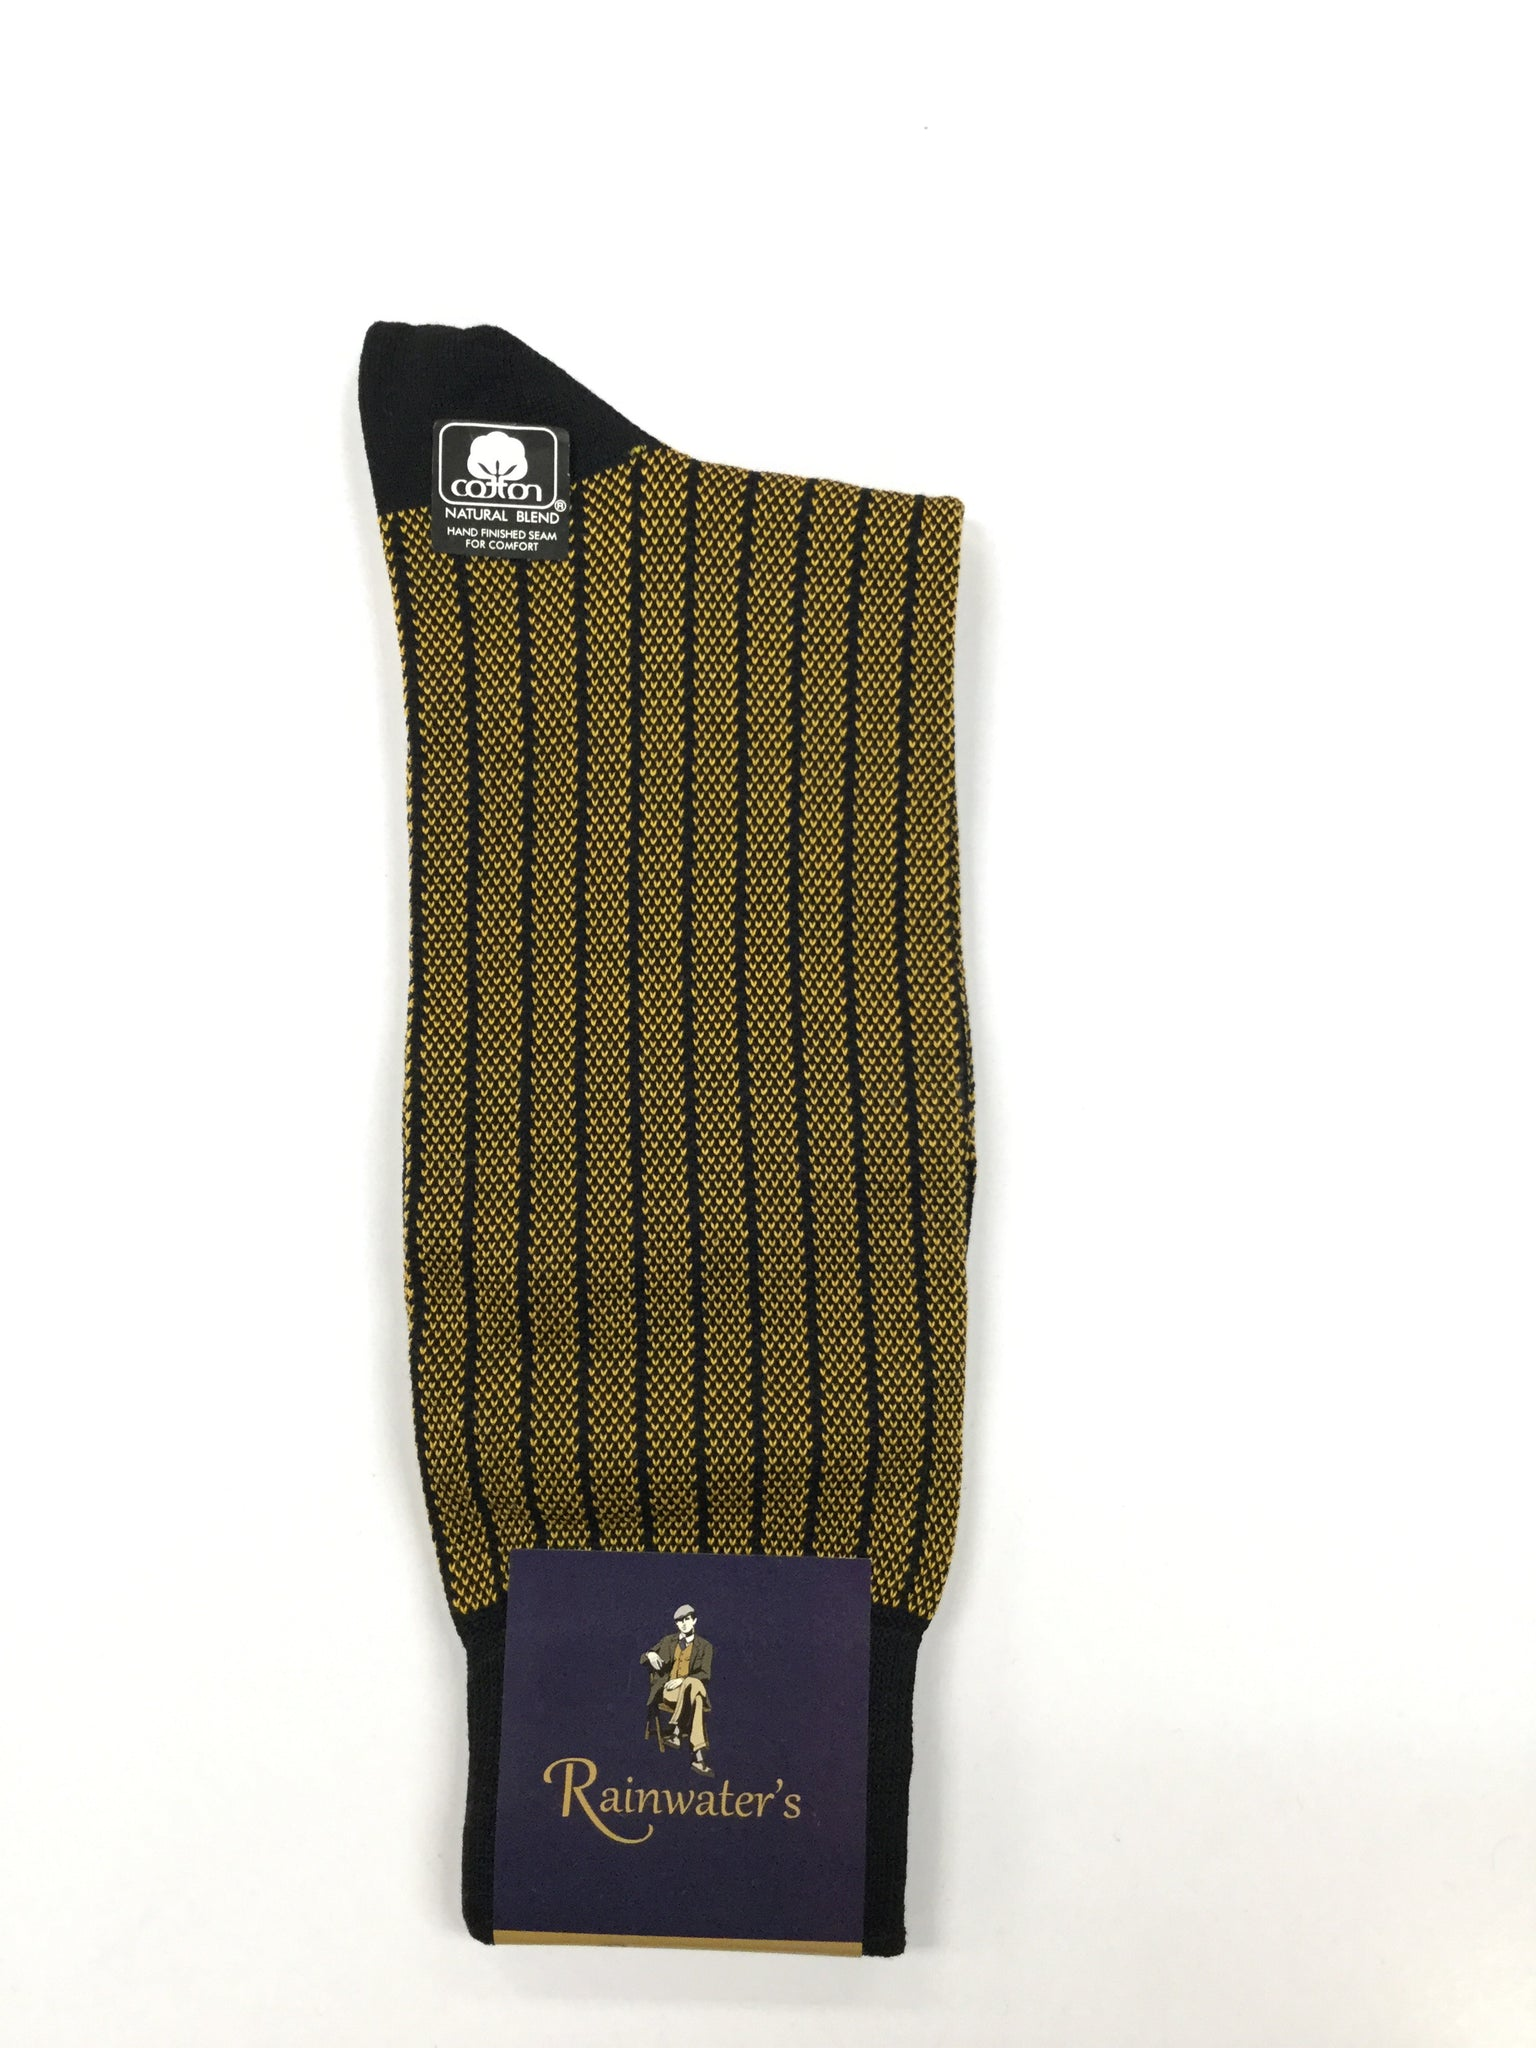 Rainwater's Mercerized Cotton Striped Dress Sock - Rainwater's Men's Clothing and Tuxedo Rental